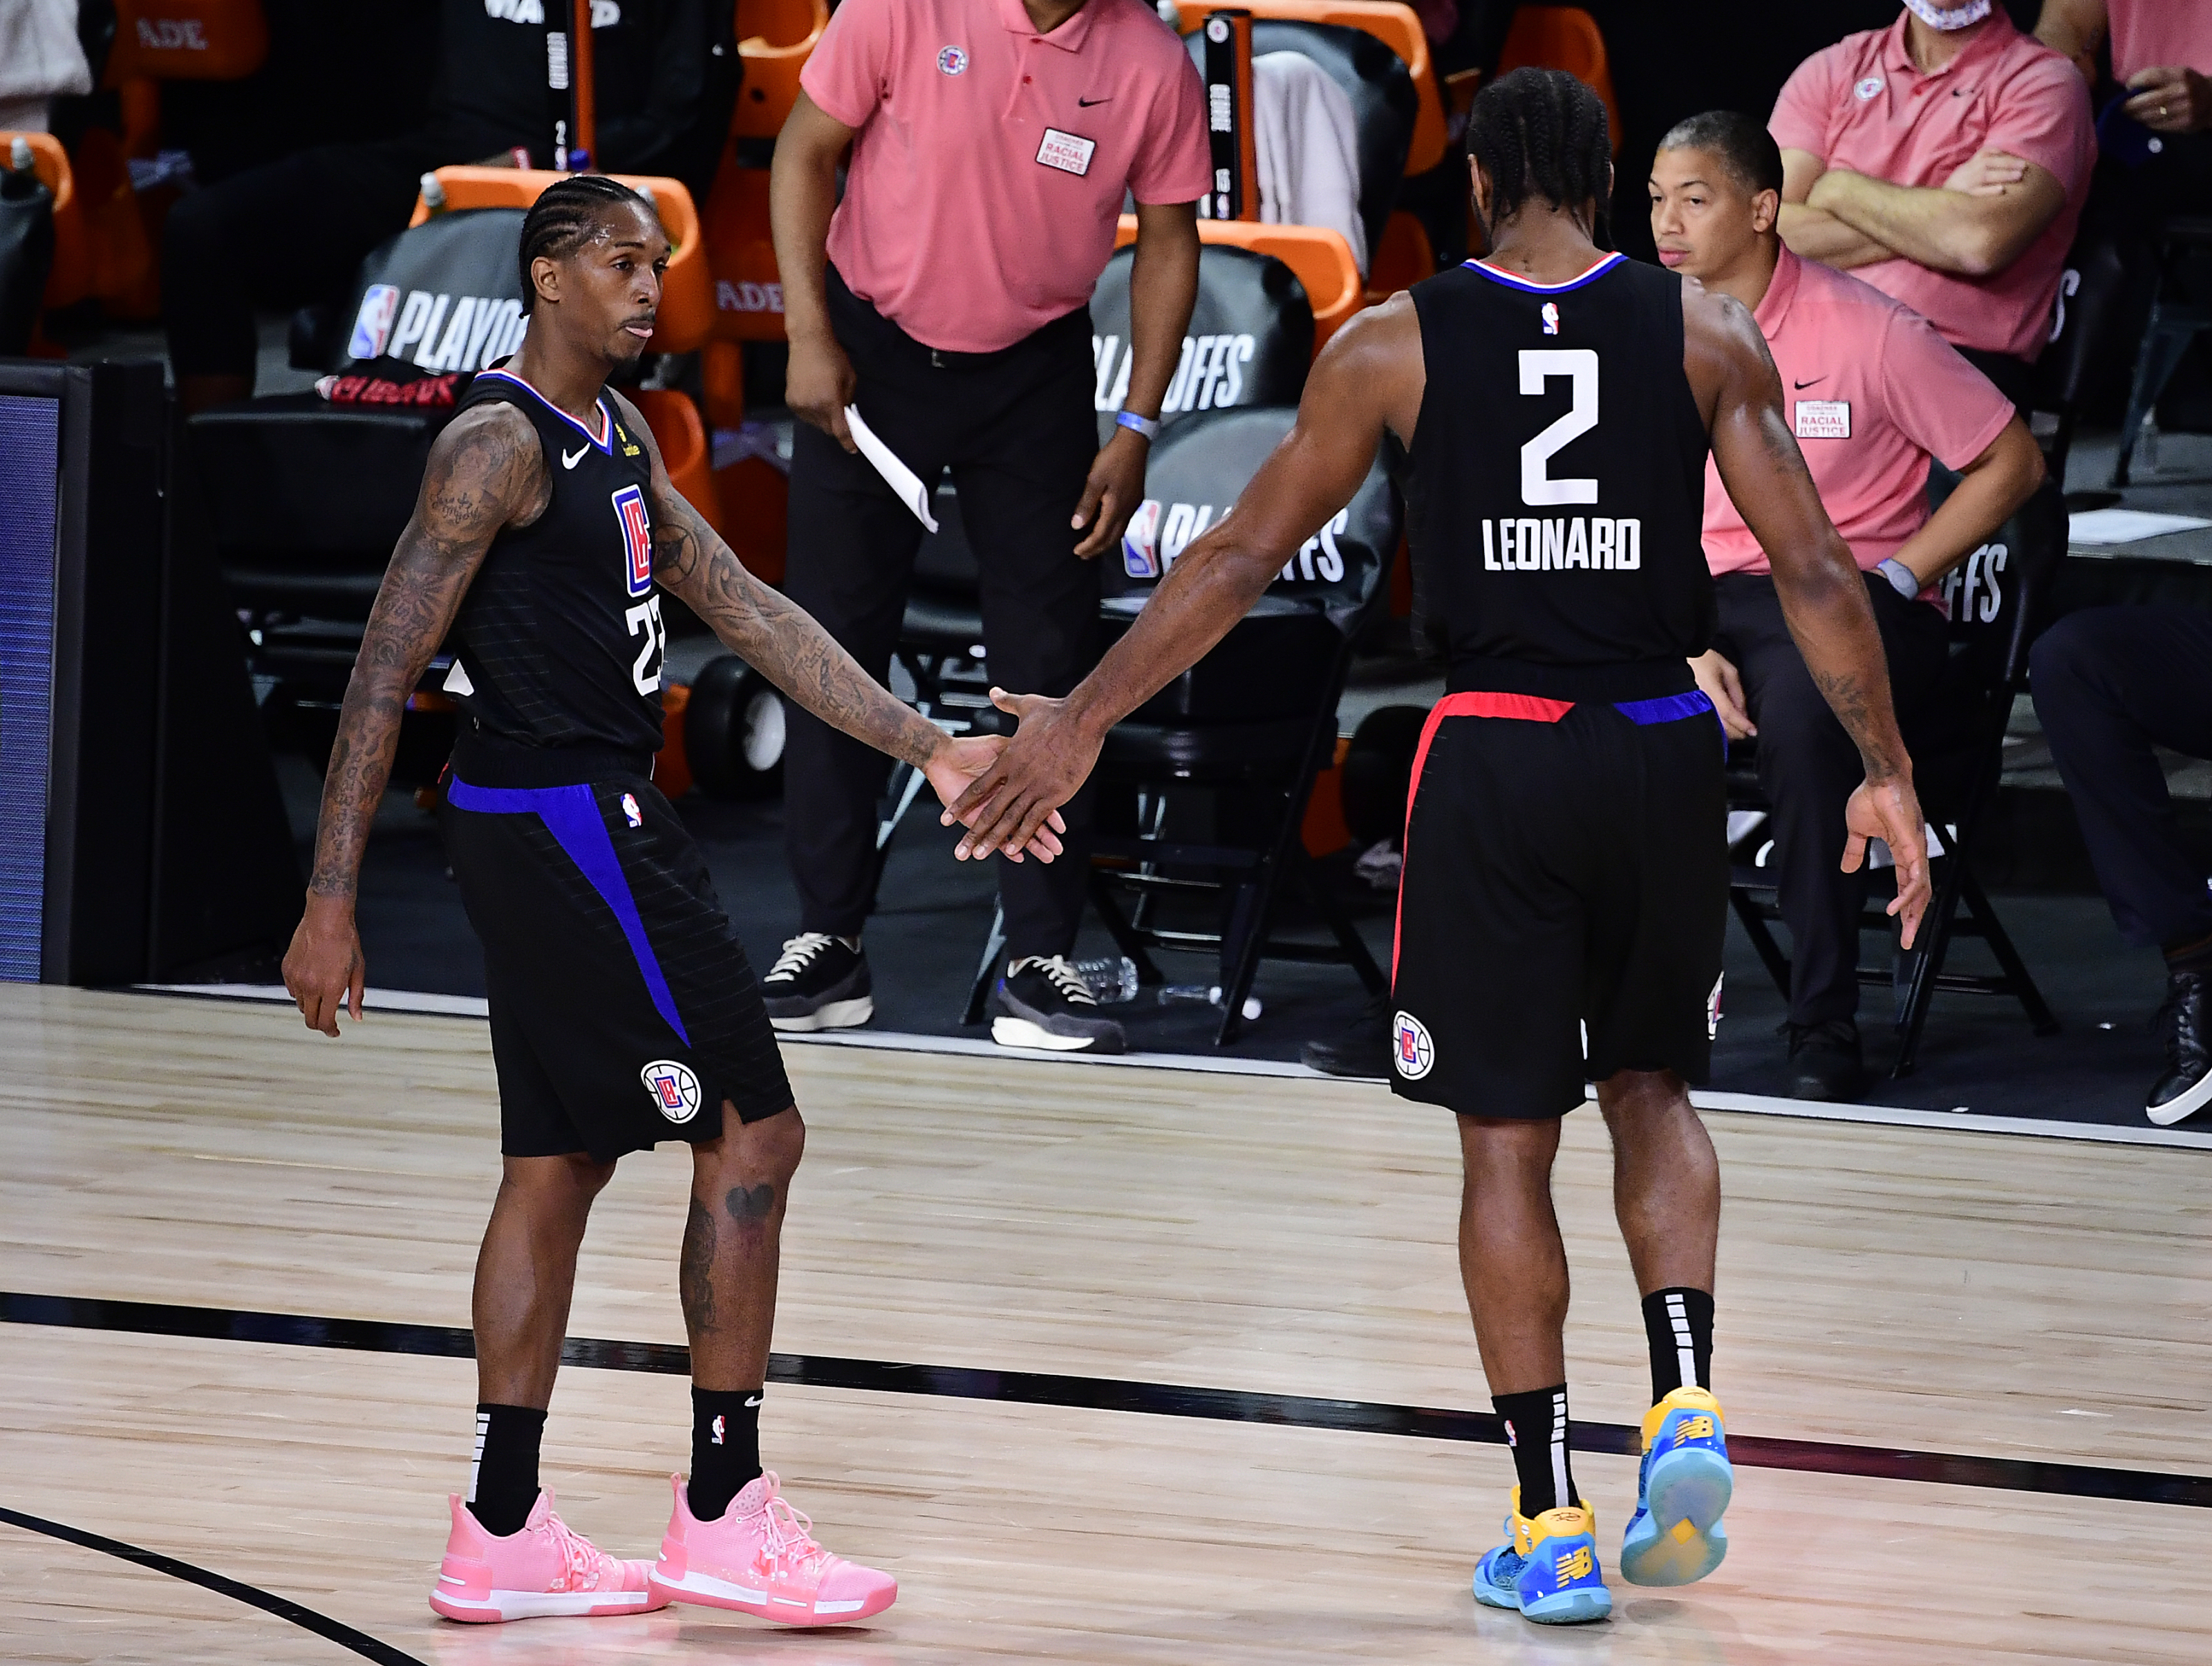 La Clippers The 2021 Nba Season Means Team Togetherness